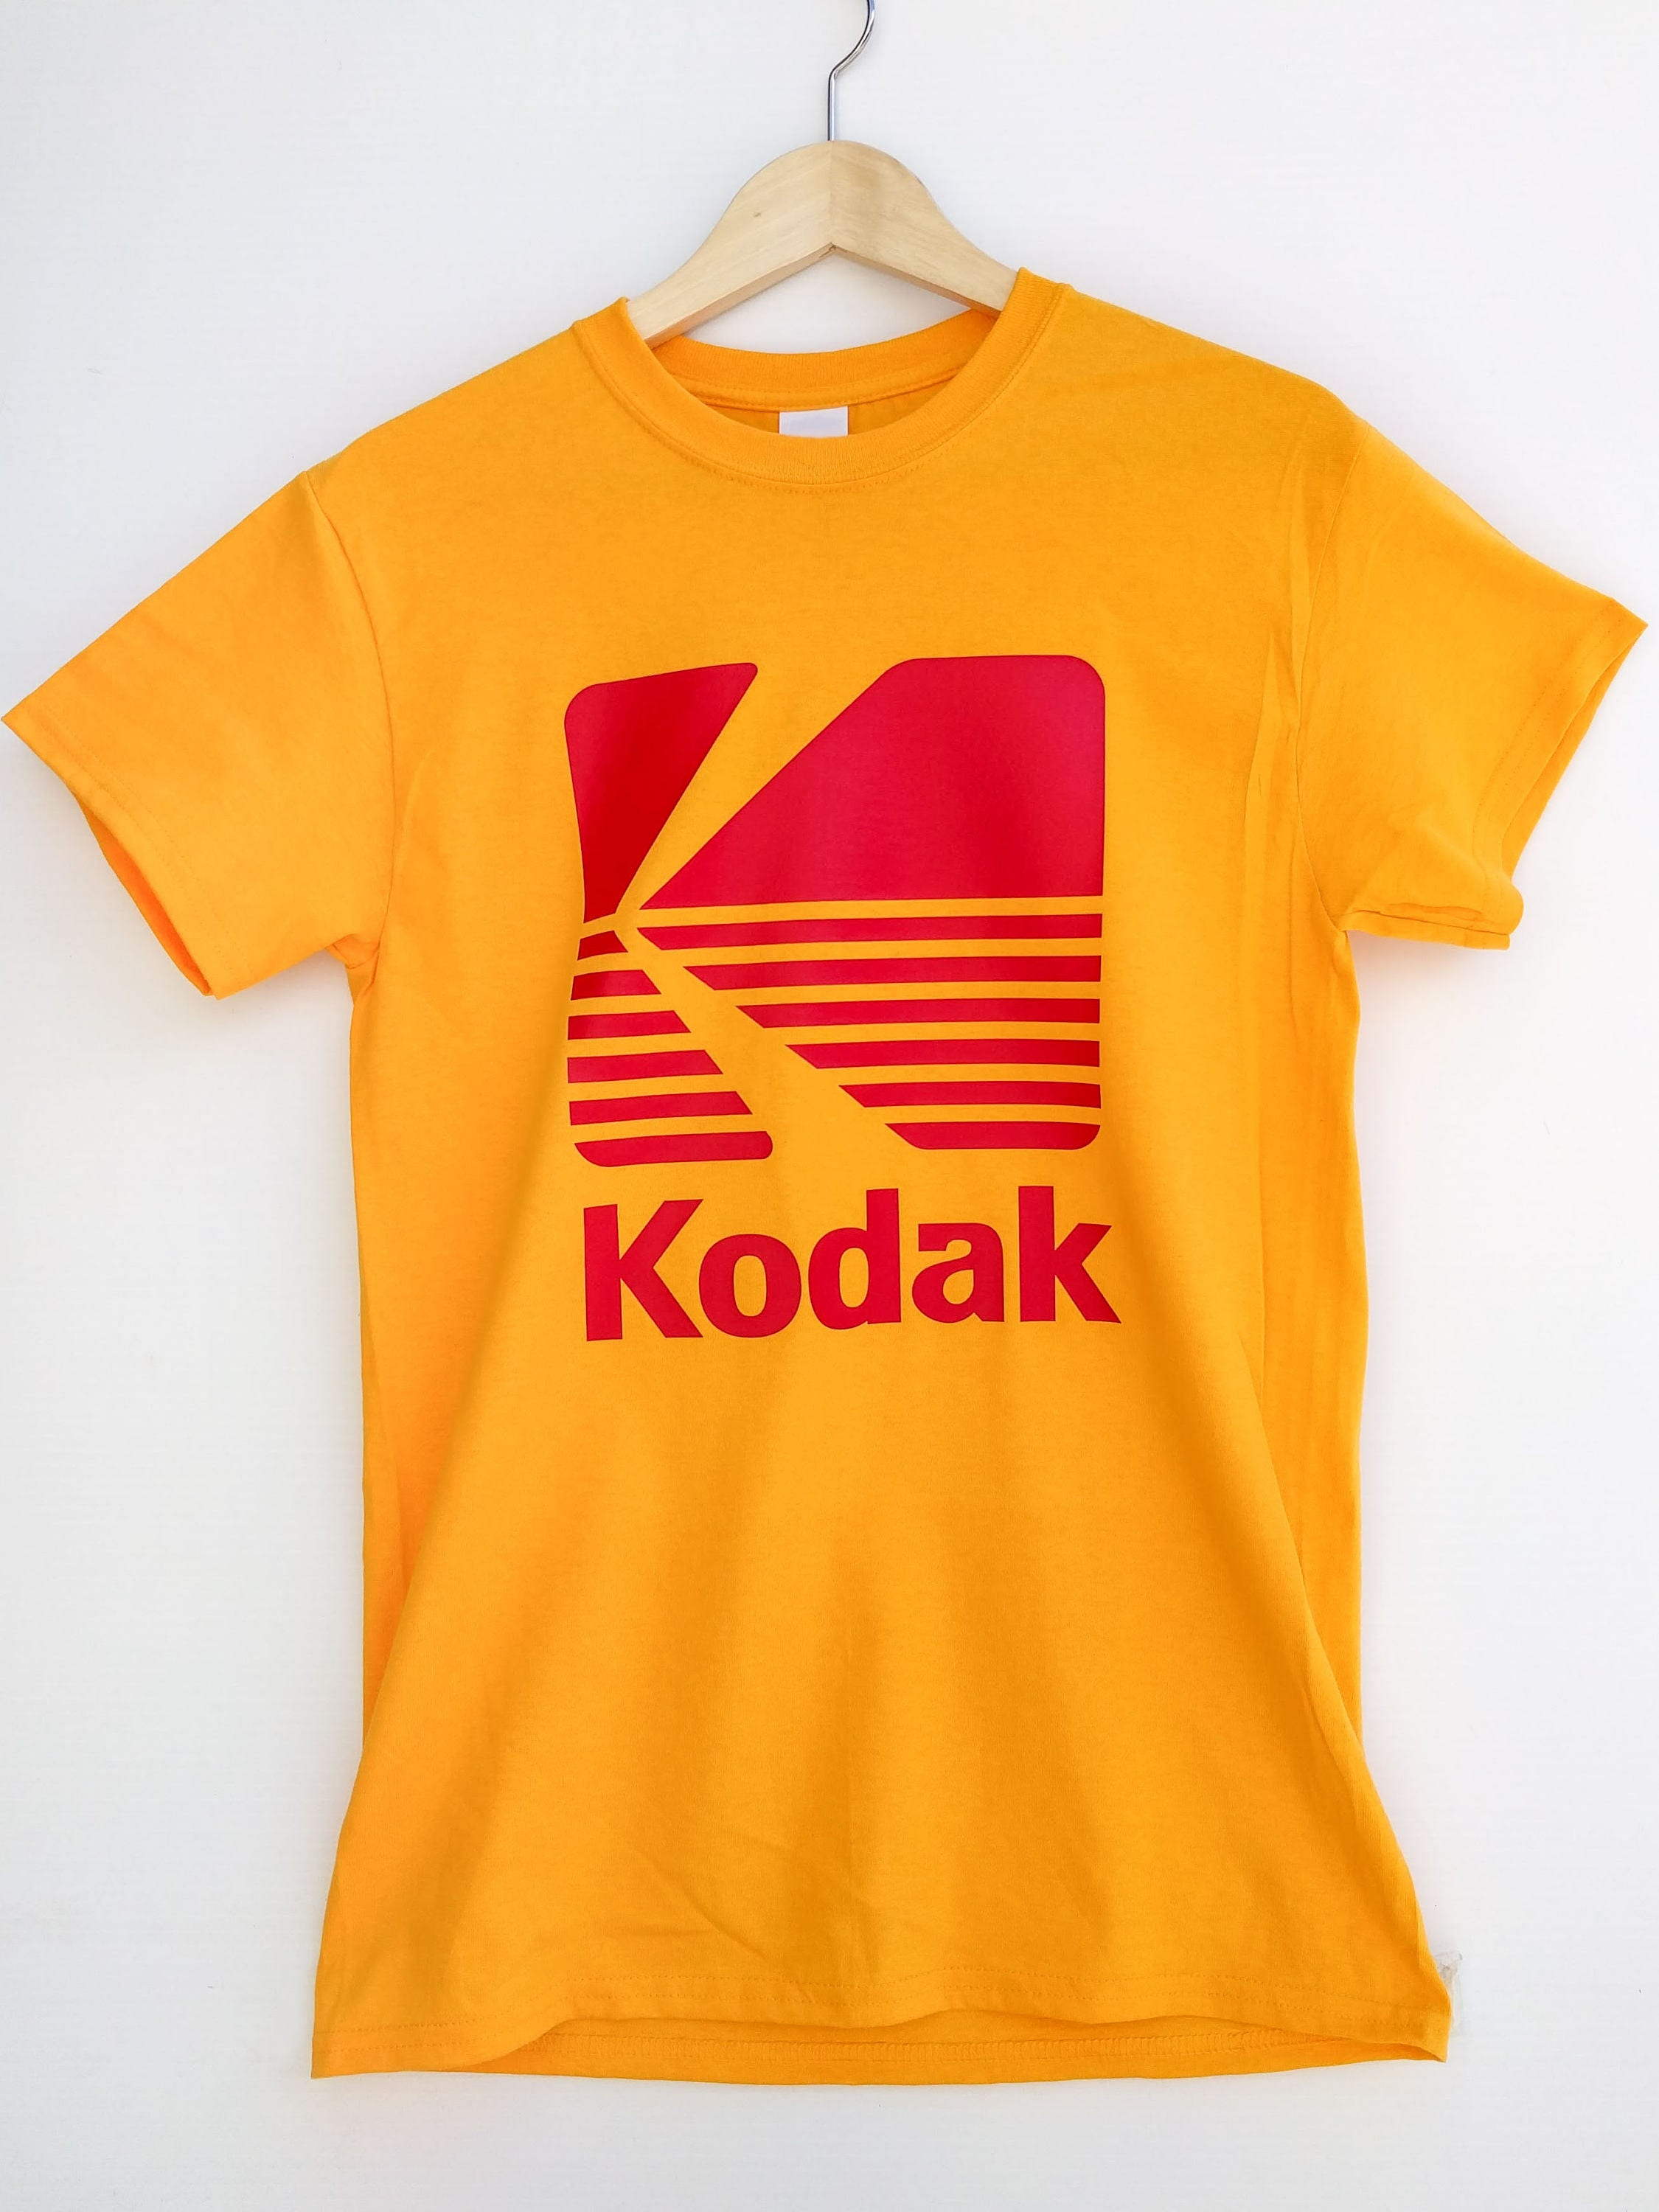 Vintage 70s Kodak Do it Shirt Use Kodak Film & Plates Photographer Photography Development Size Large 70s T-shirt kOIFzfJC4